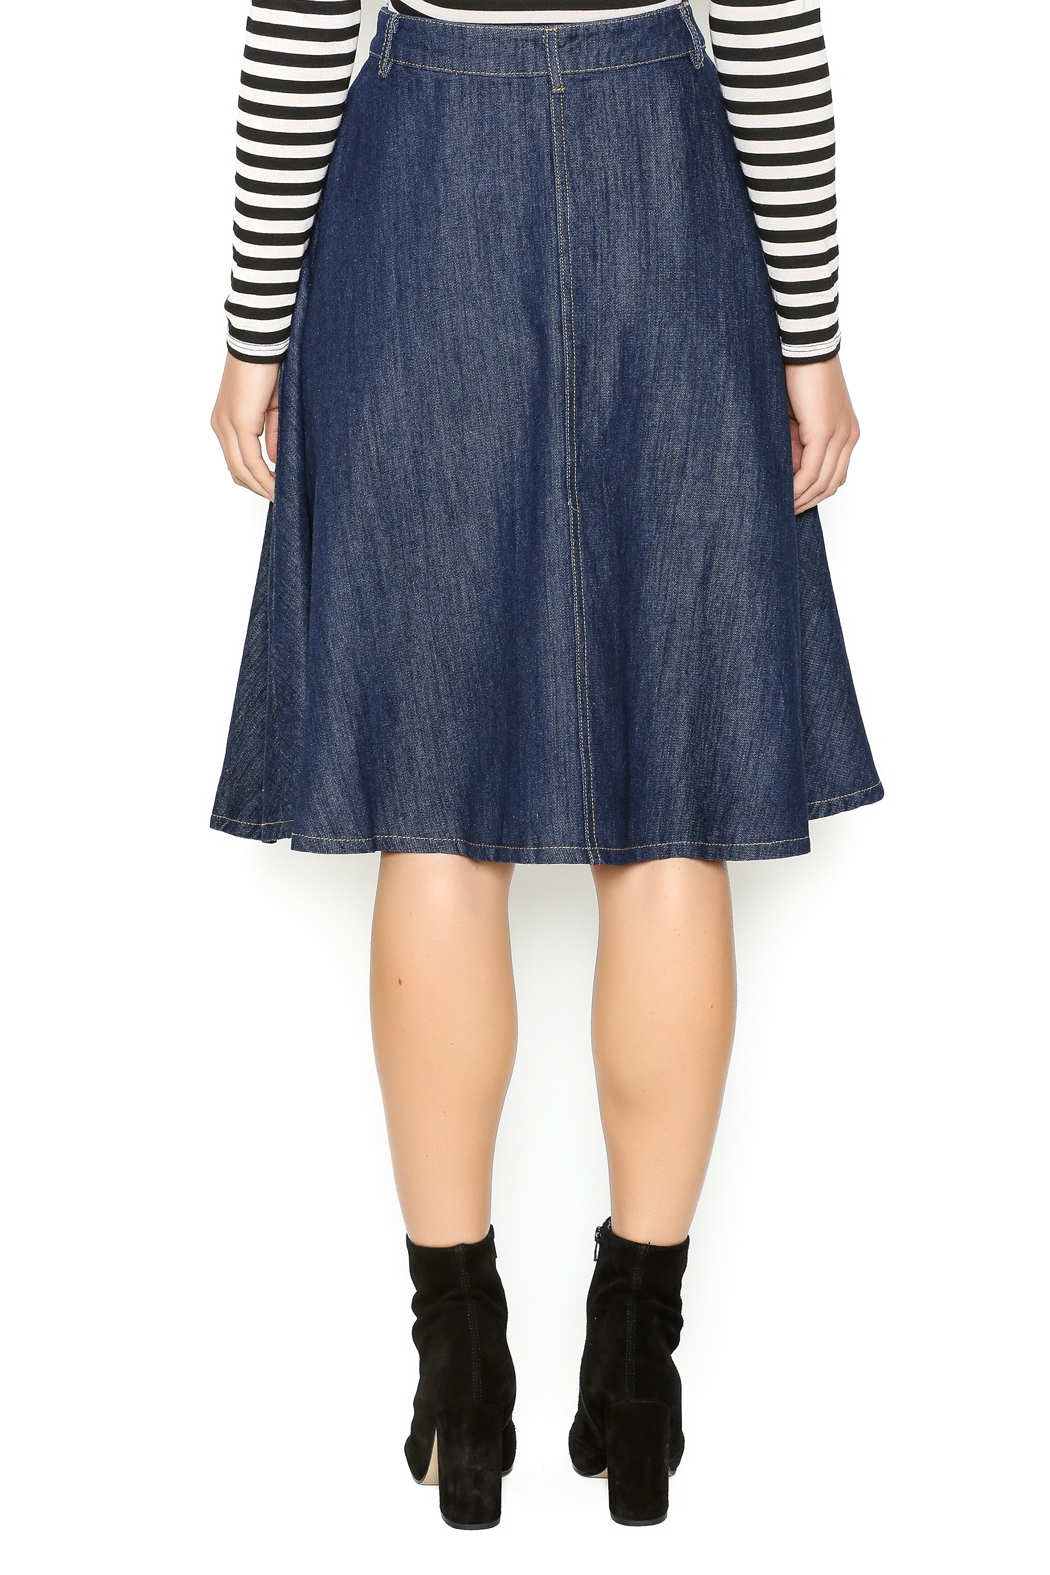 In Style Strong Denim Midi-Skirt - Back Cropped Image